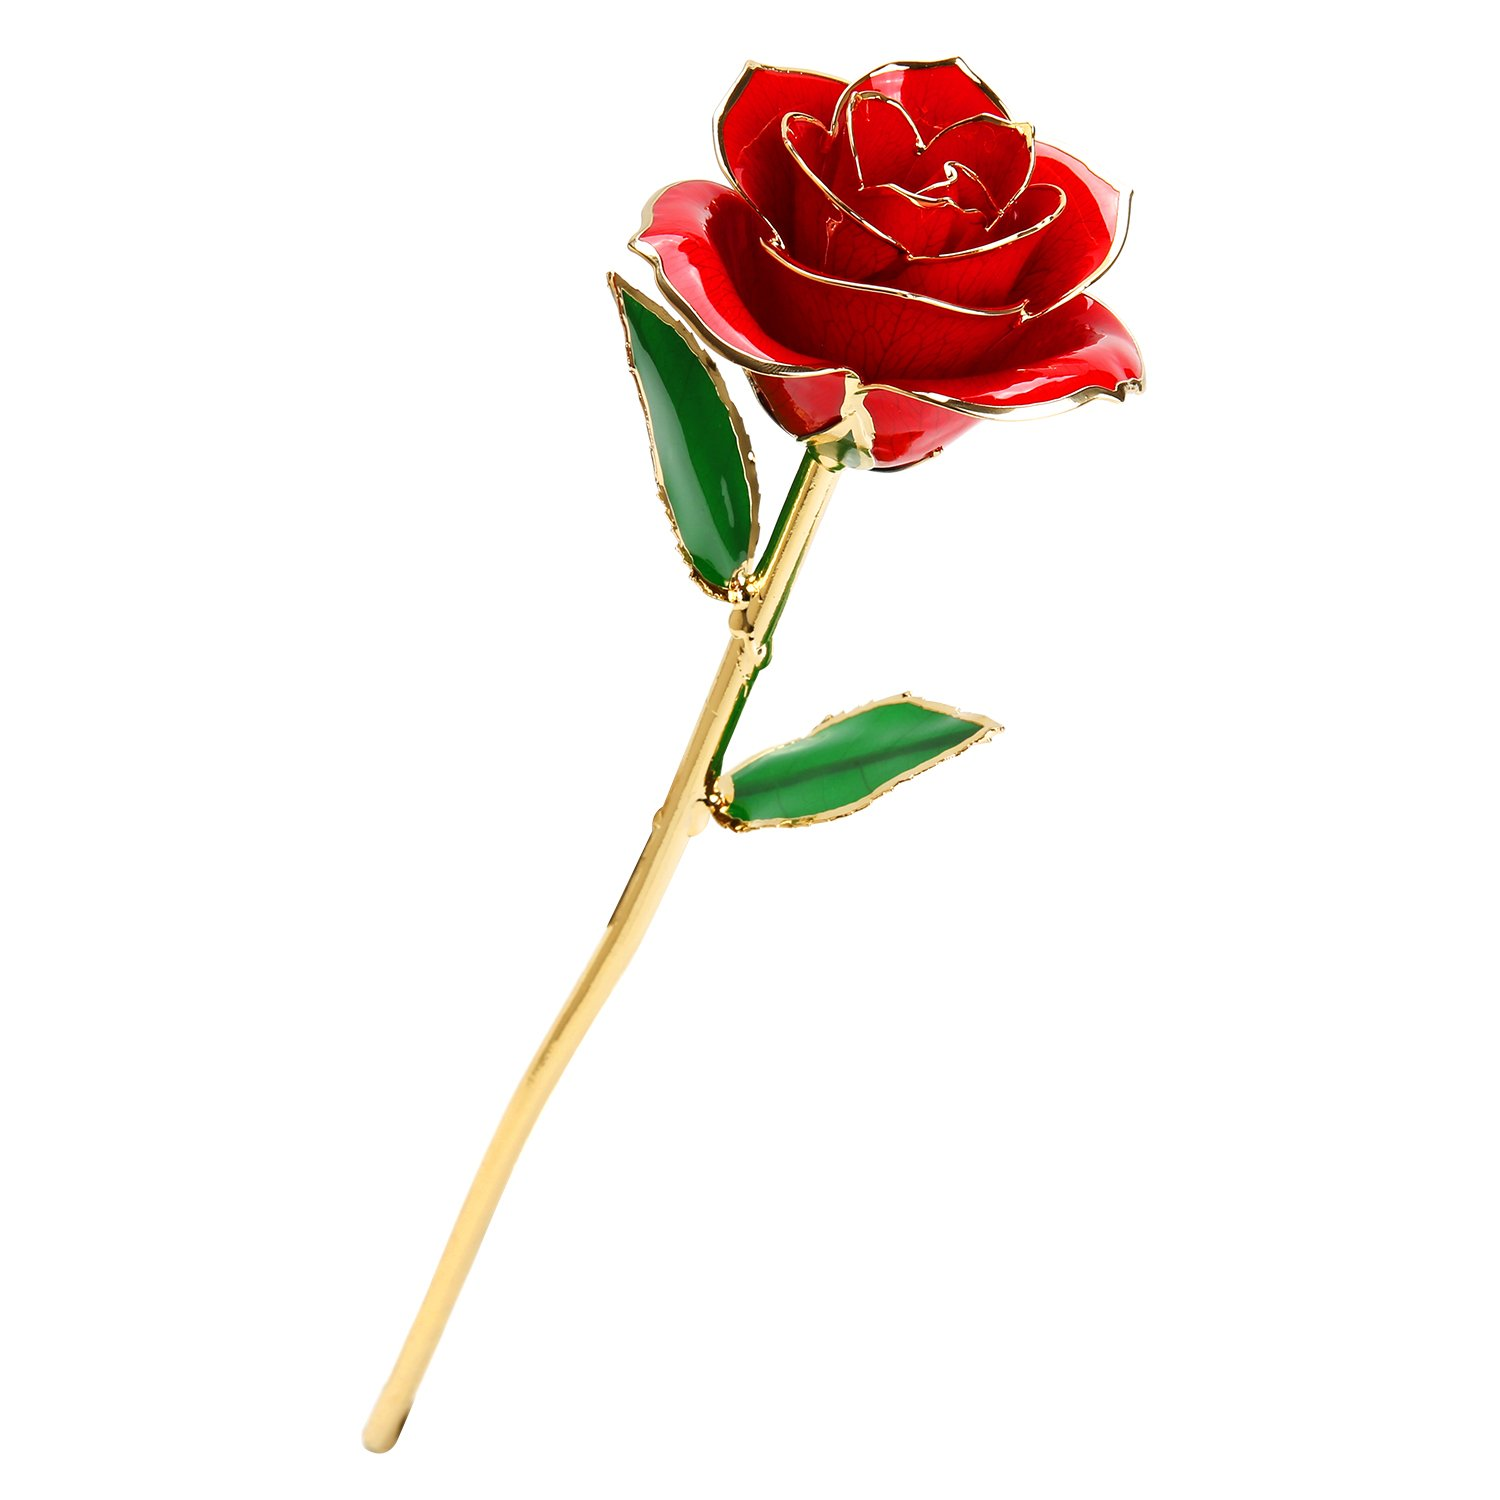 Unique gifts for women Gold Rose, 24K Gold Trimmed Long Stem Love Forever Flower with stand Best Gift for friends Mother Lover Girlfriend on White Valentine's Day, Mother's Day, Anniversary, Birthday Mother's Day Getonny